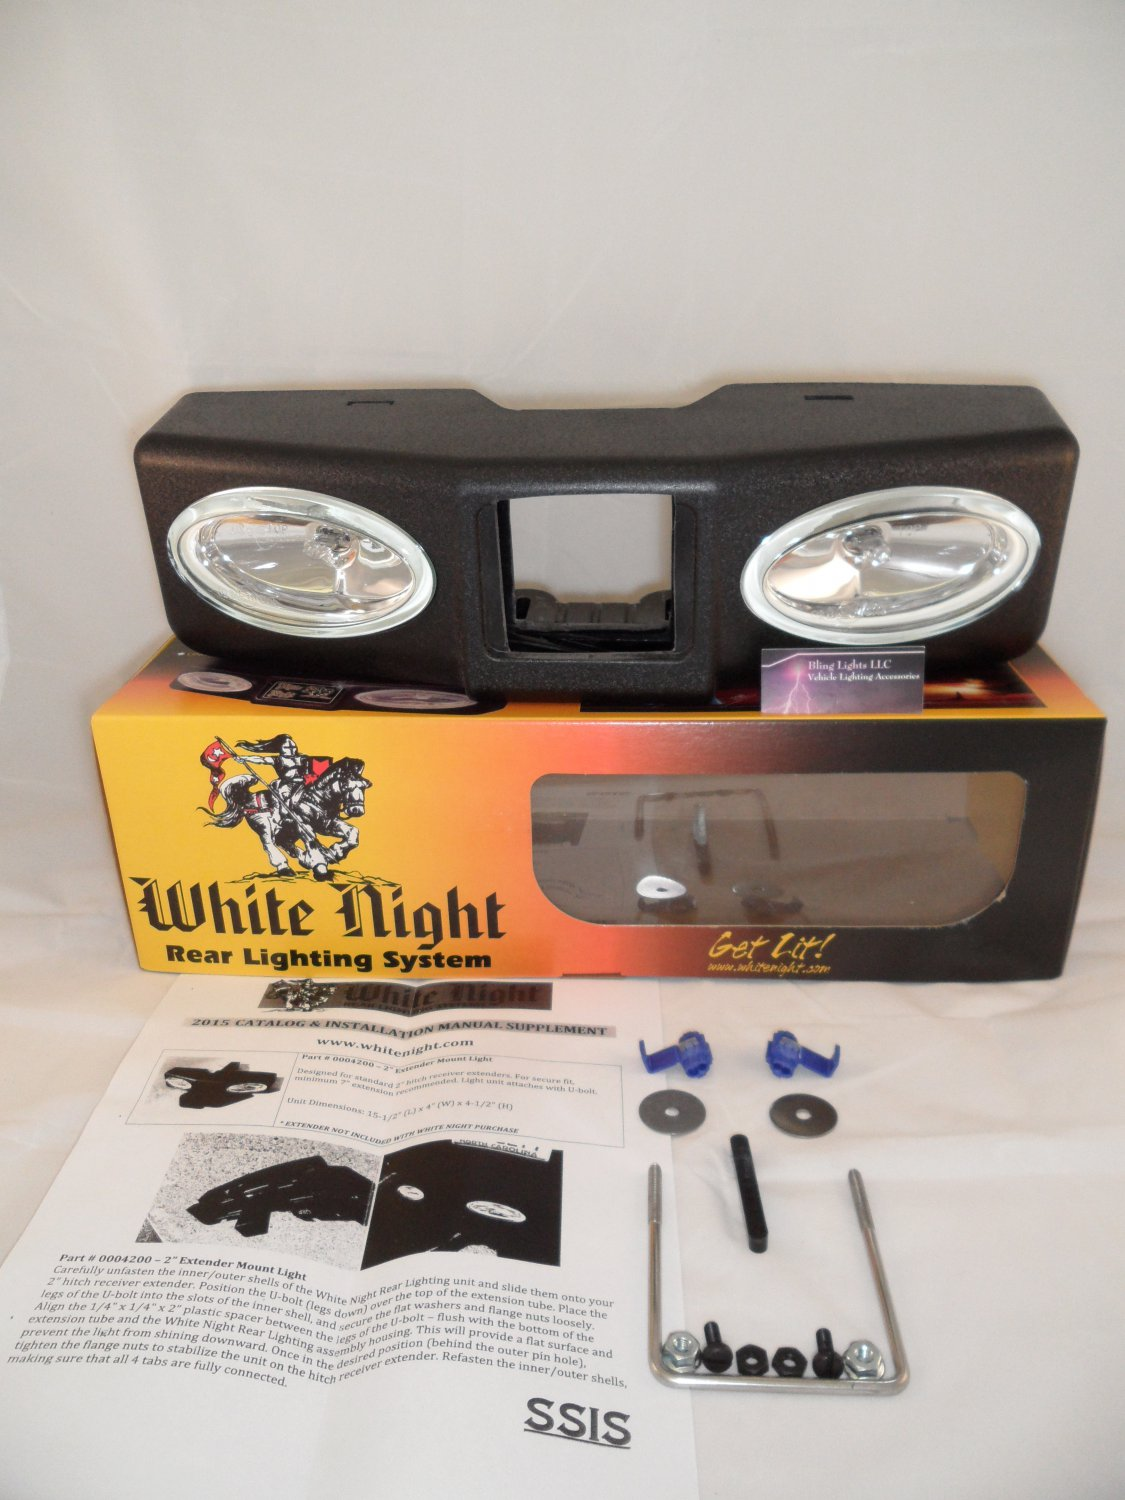 "White Night 0004200 2"" Extender Mount Light Unit Tow Hitch Backup Lighting"